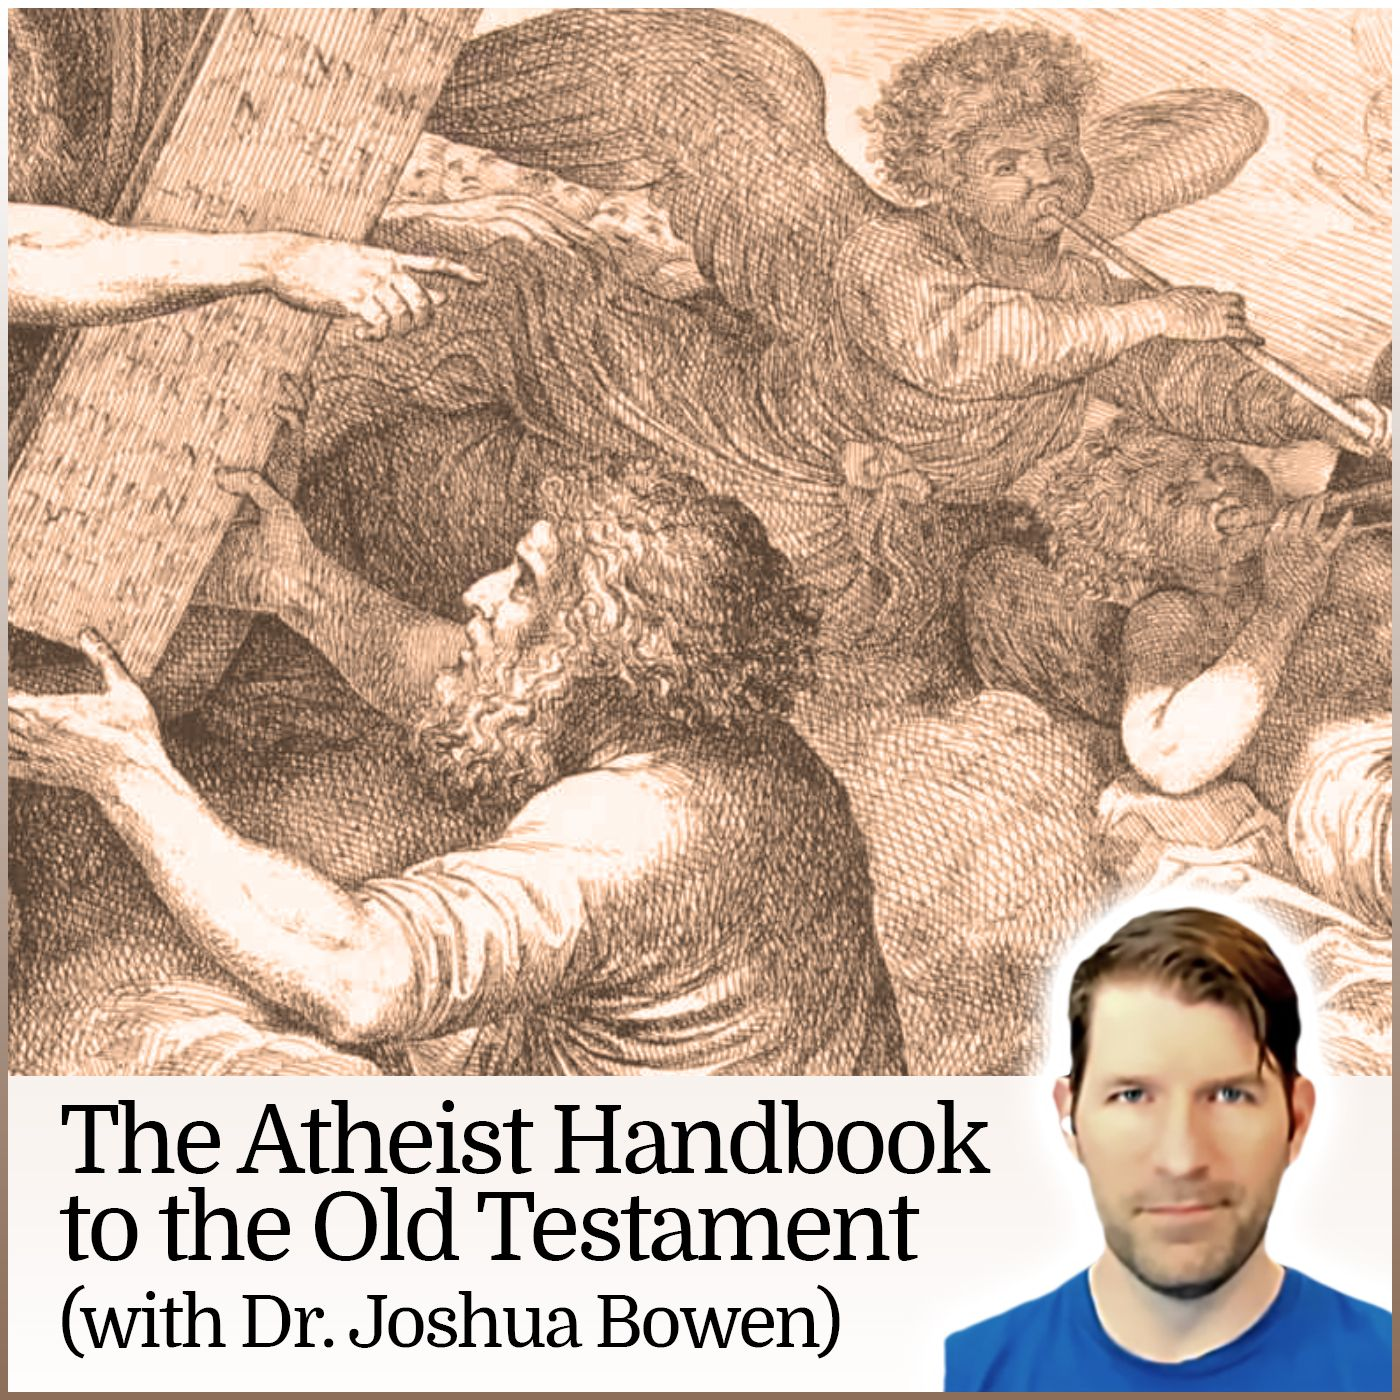 The Atheist Handbook to the Old Testament (with Dr. Joshua Bowen)